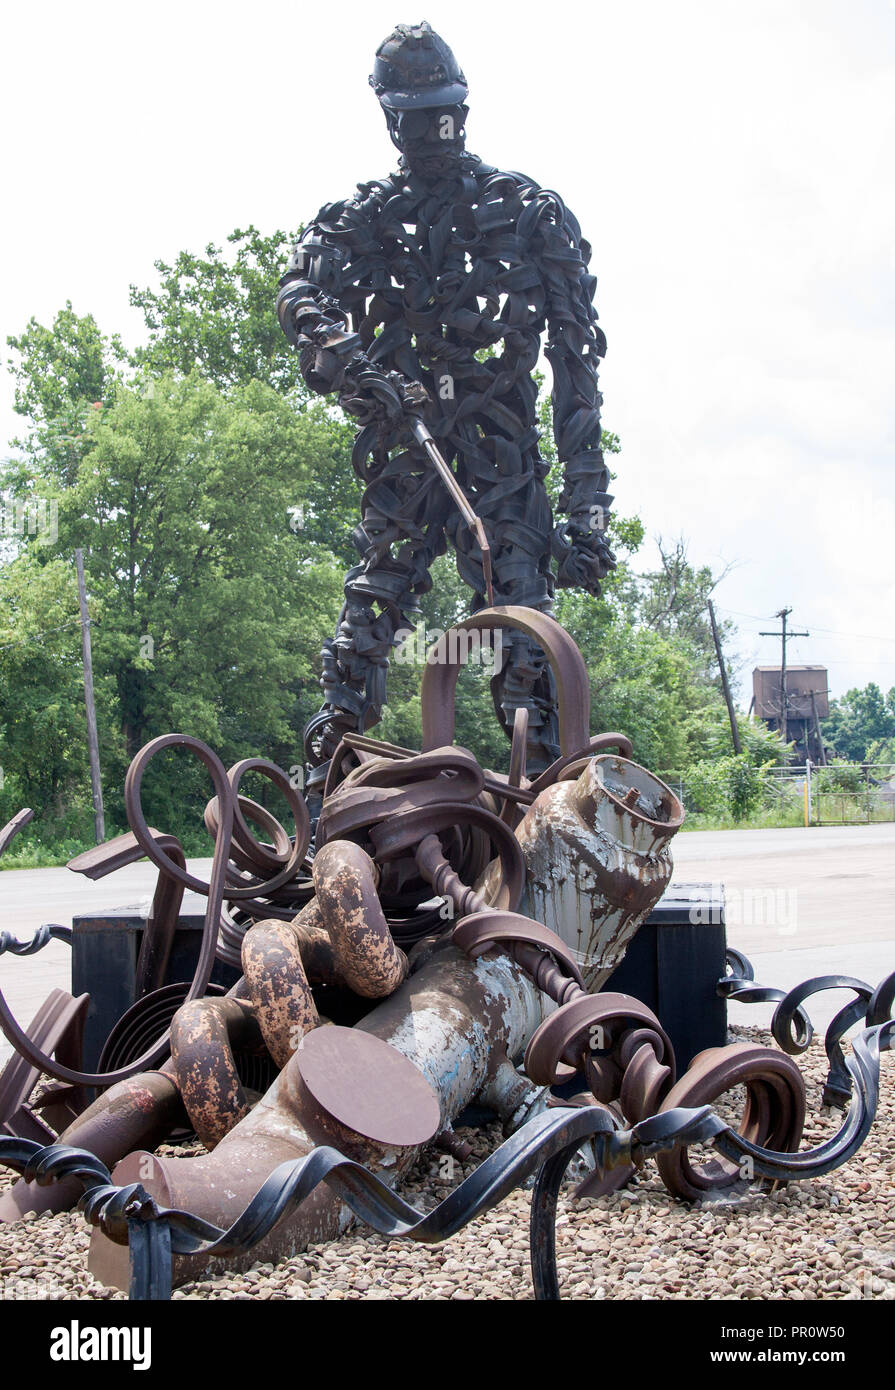 The big Iron Worker statue was made by the children of the